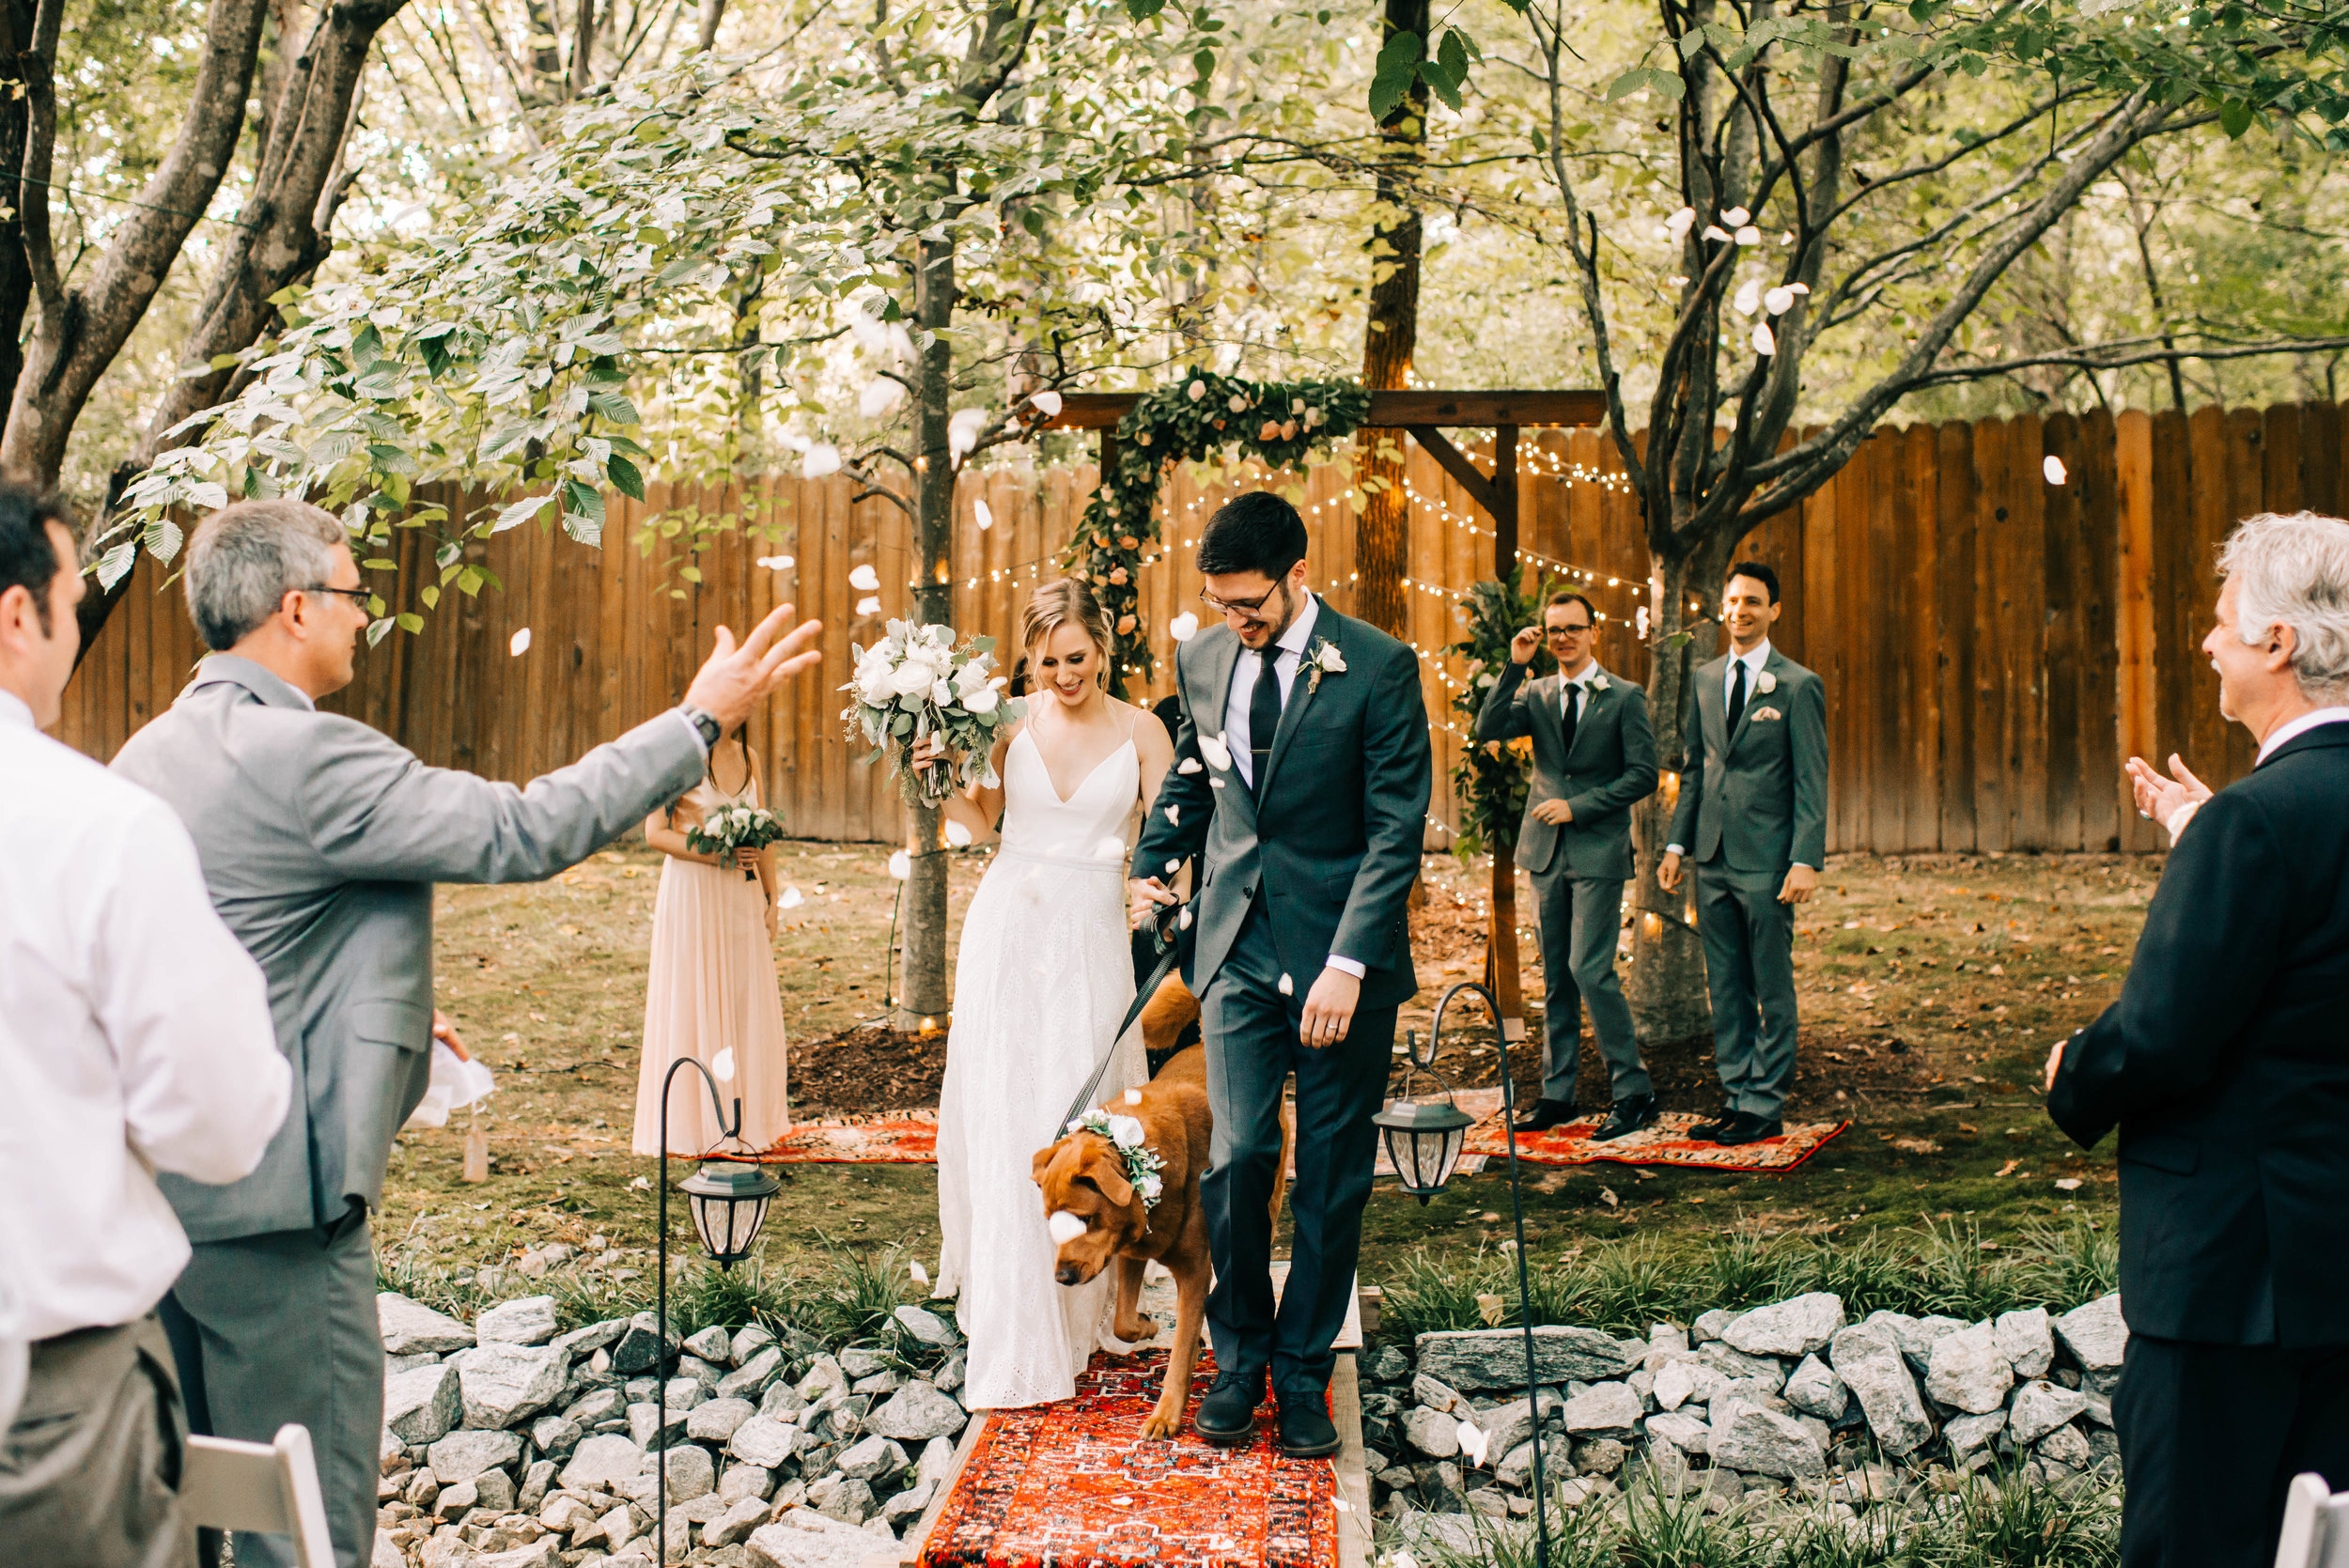 atlanta backyard wedding bay area oakland san francisco engagement wedding nontraditional fun creative eclectic photographer magic-698.jpg